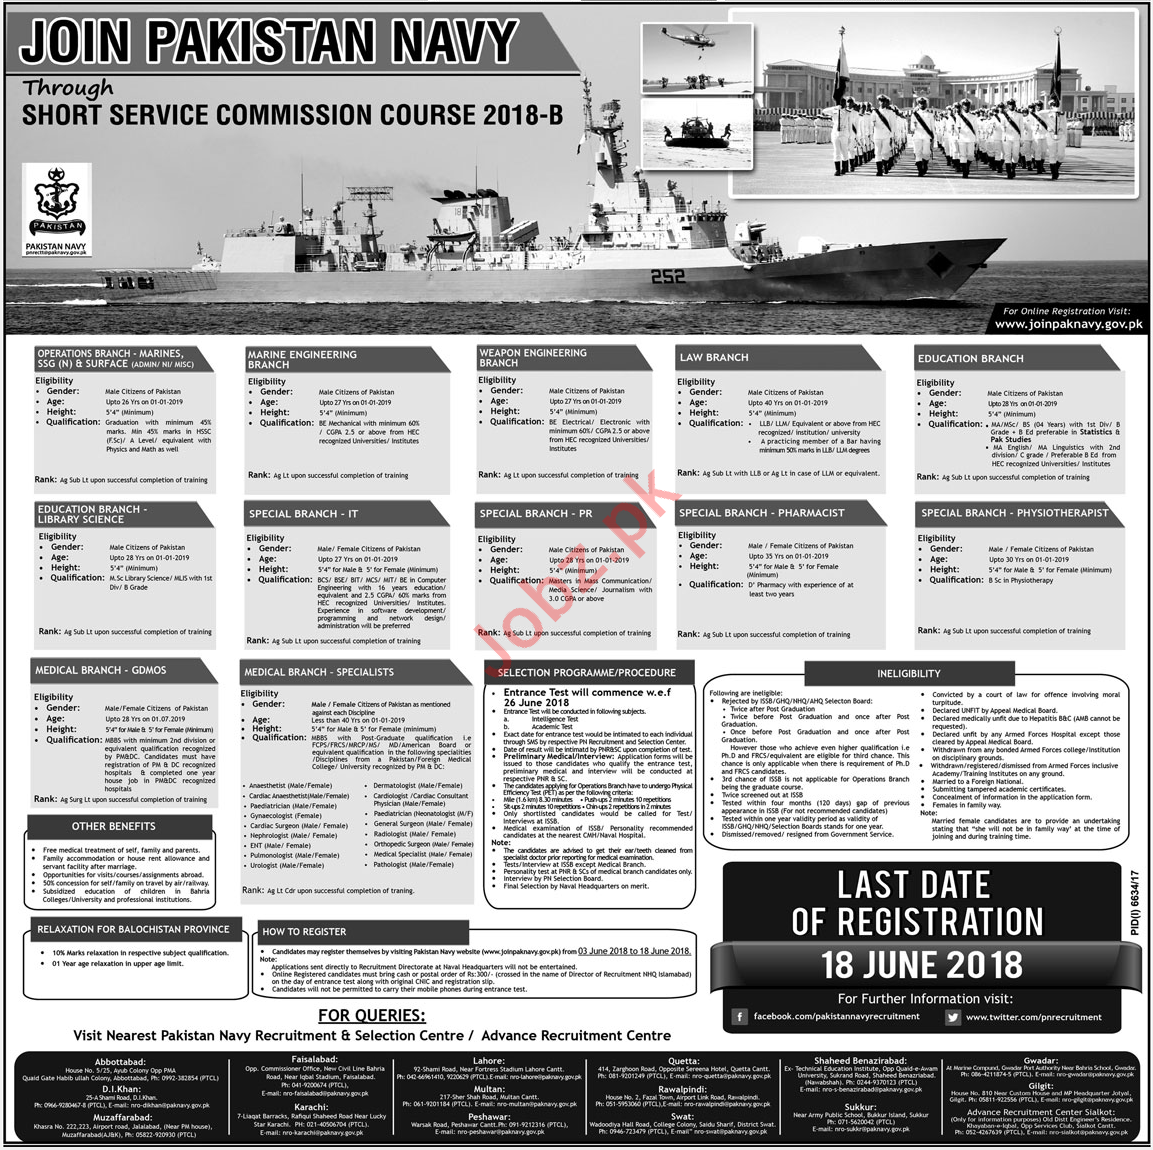 Join Pak Navy Through Short Service Commission Course 2018-B